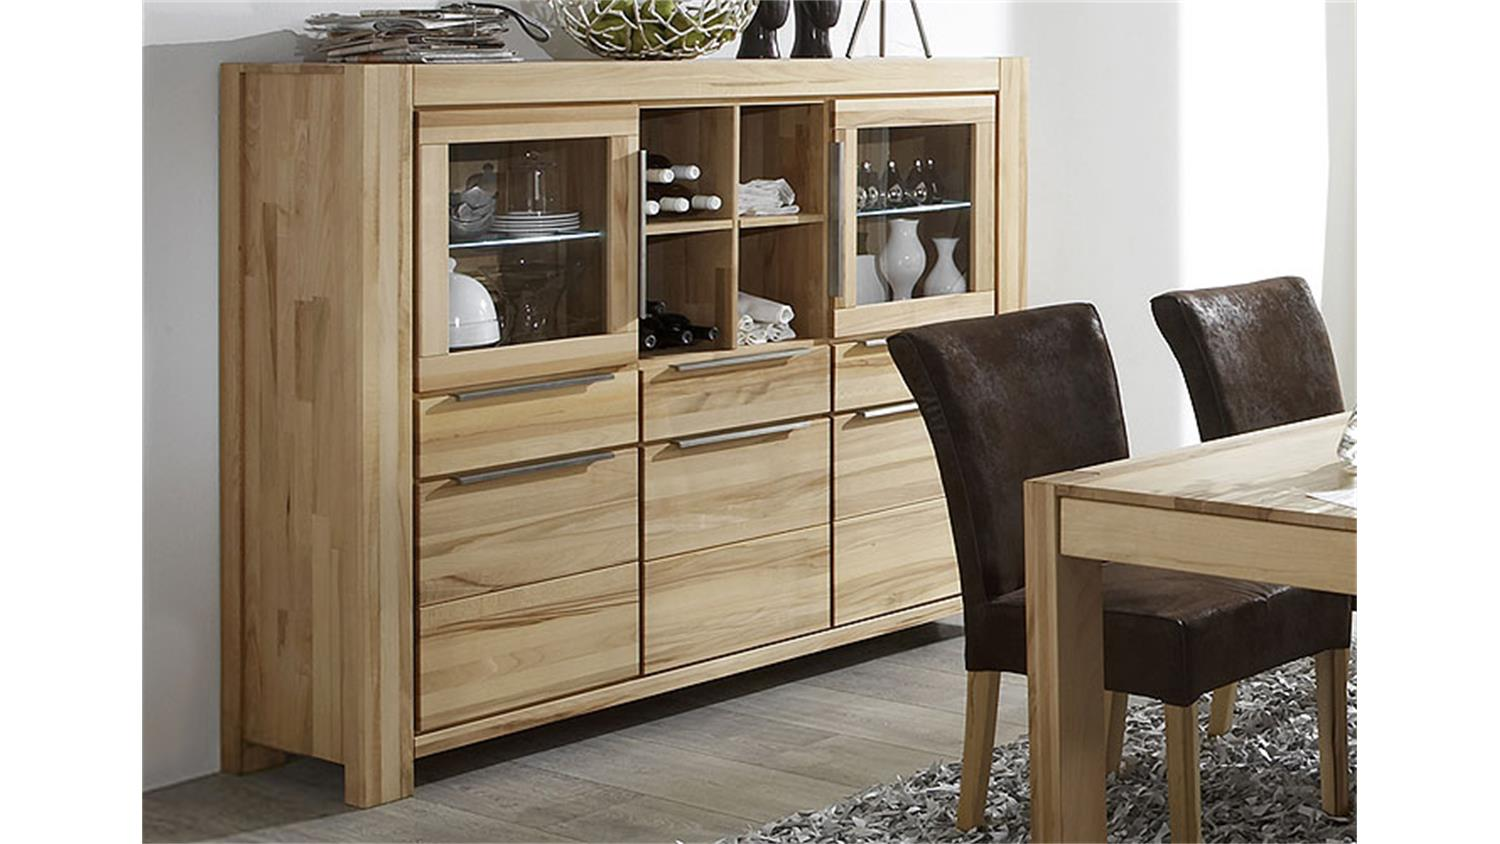 Couchtisch Nena Highboard Nena Sideboard Vitrine In Kernbuche Massiv Geölt